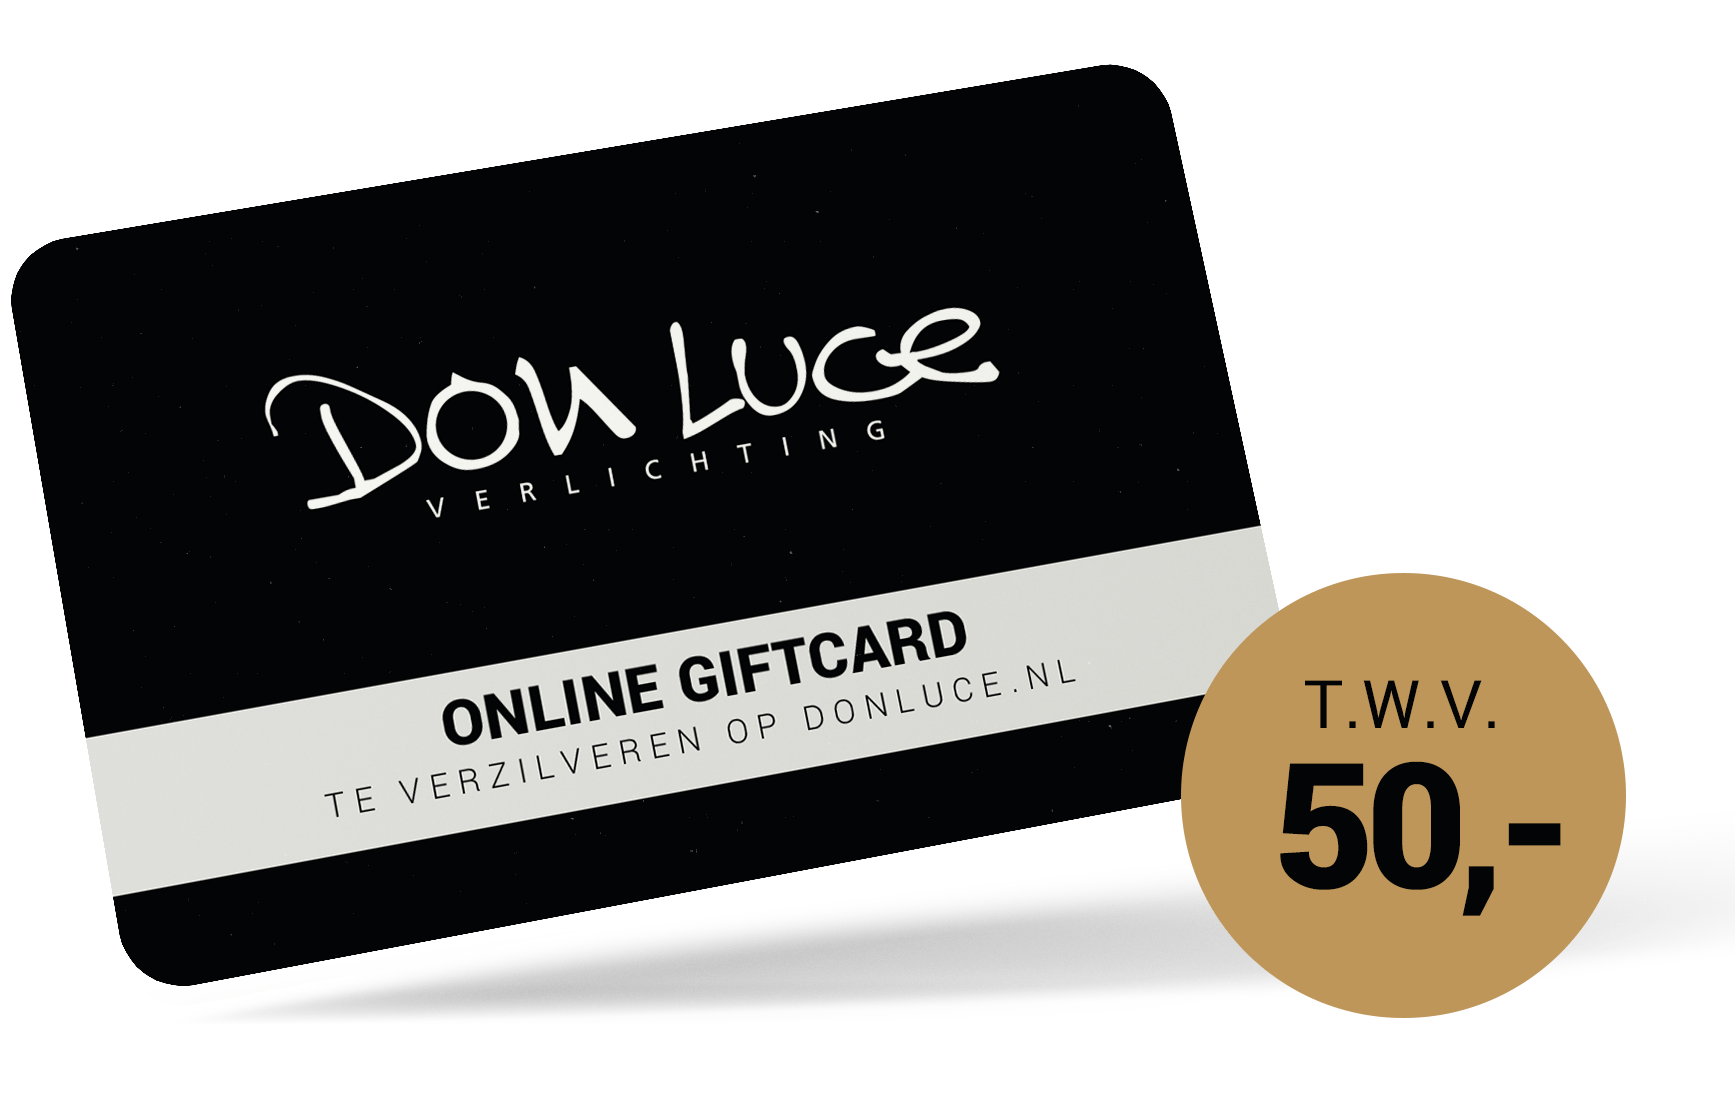 DonLuce Giftcard 50